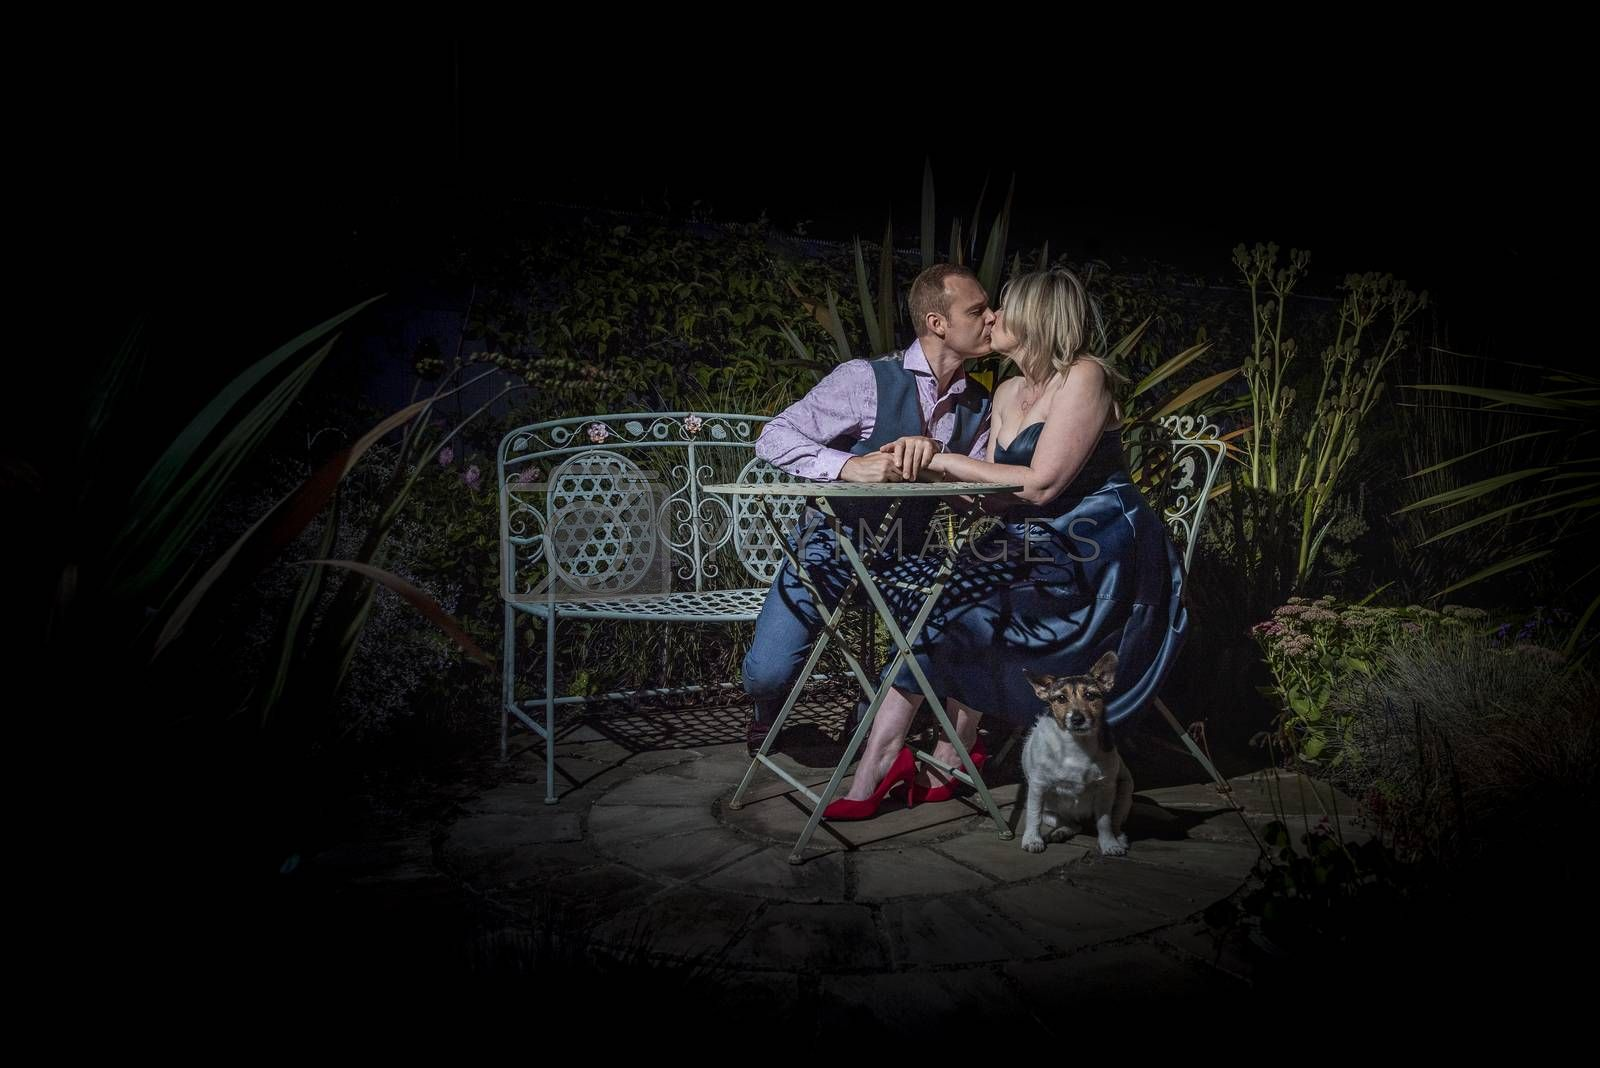 Quorn, UK - Aug 2019: Couple kissing on a garden bench at night, dog in forground